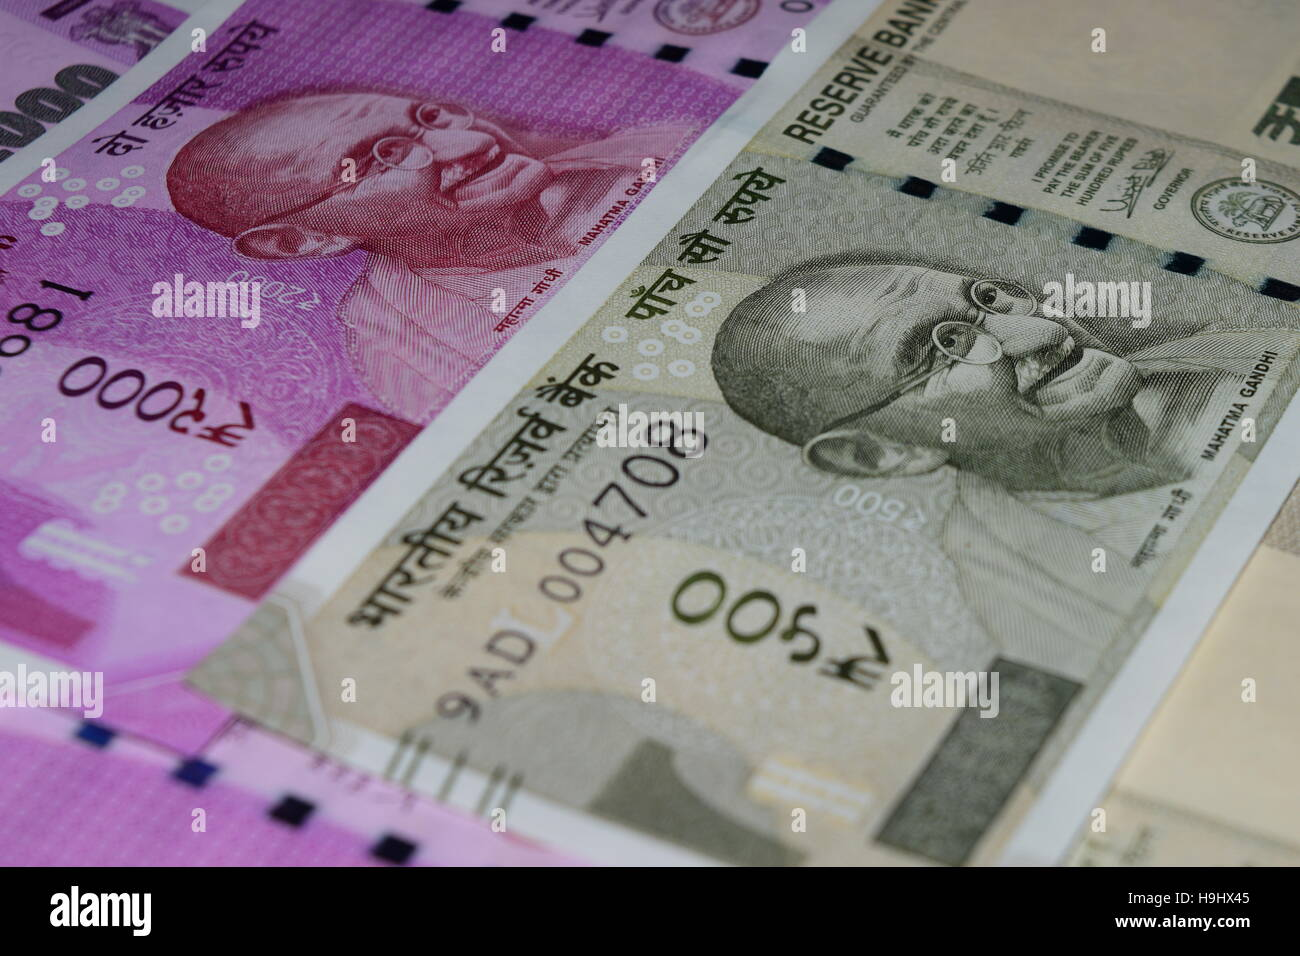 Mahatma Gandhi portrait view in Latest 500 and 2000 Rupees Currencies note in India after the ban of old bank currency - Stock Image